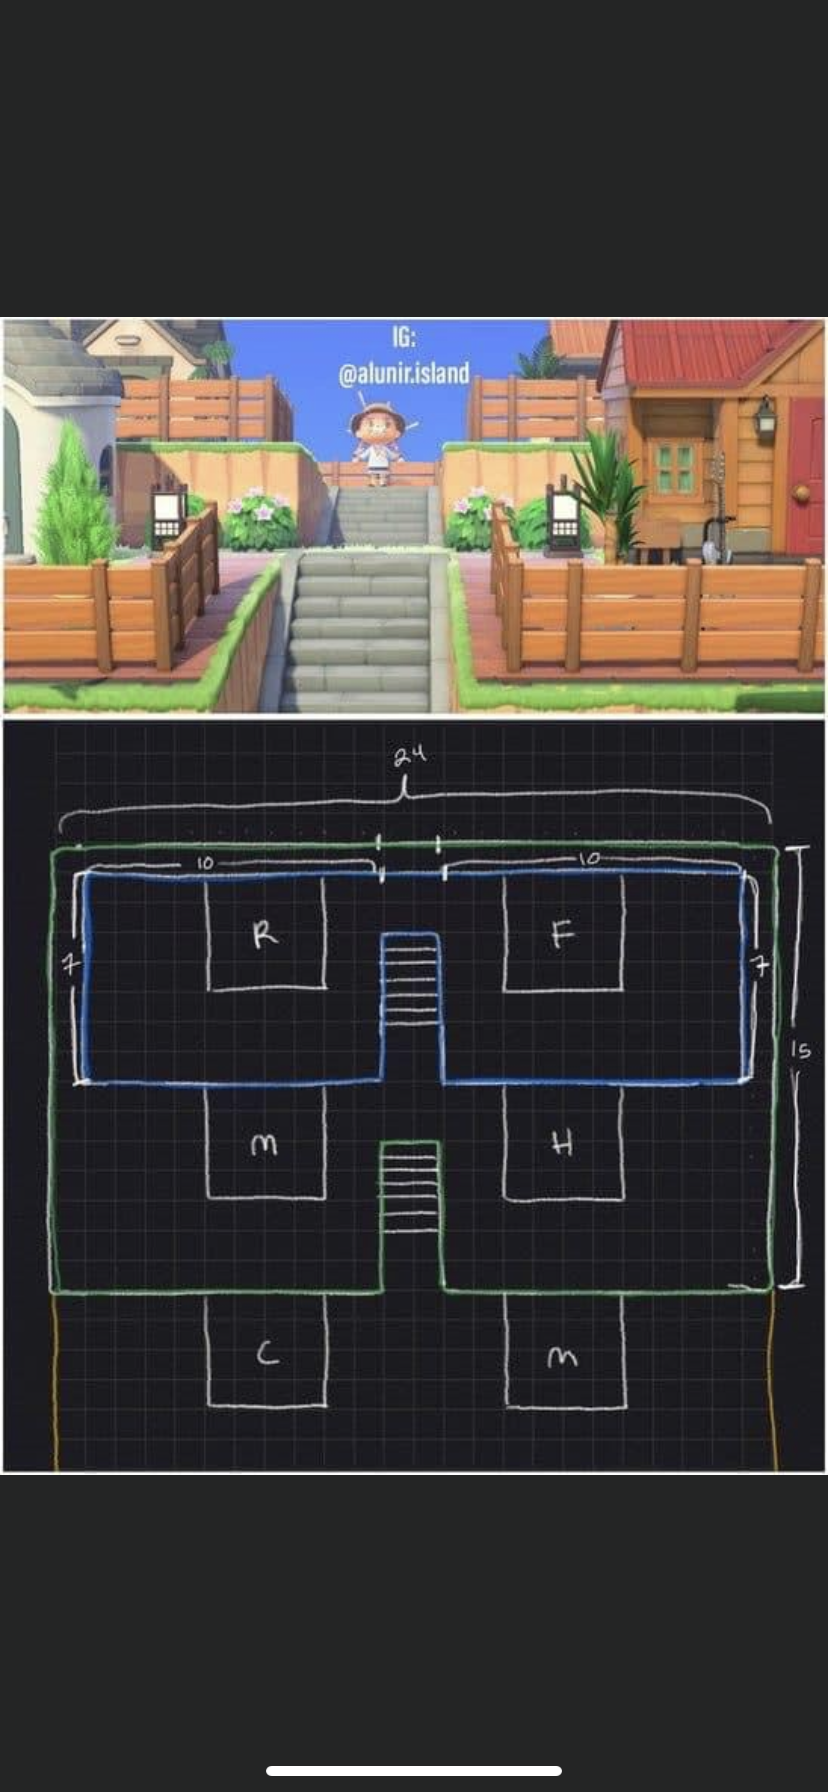 Acnh Housing Layout Acnh Island Designs Ideas Animal Crossing House Layout Villager Animal Crossing Villagers Animal Crossing Funny Animal Crossing